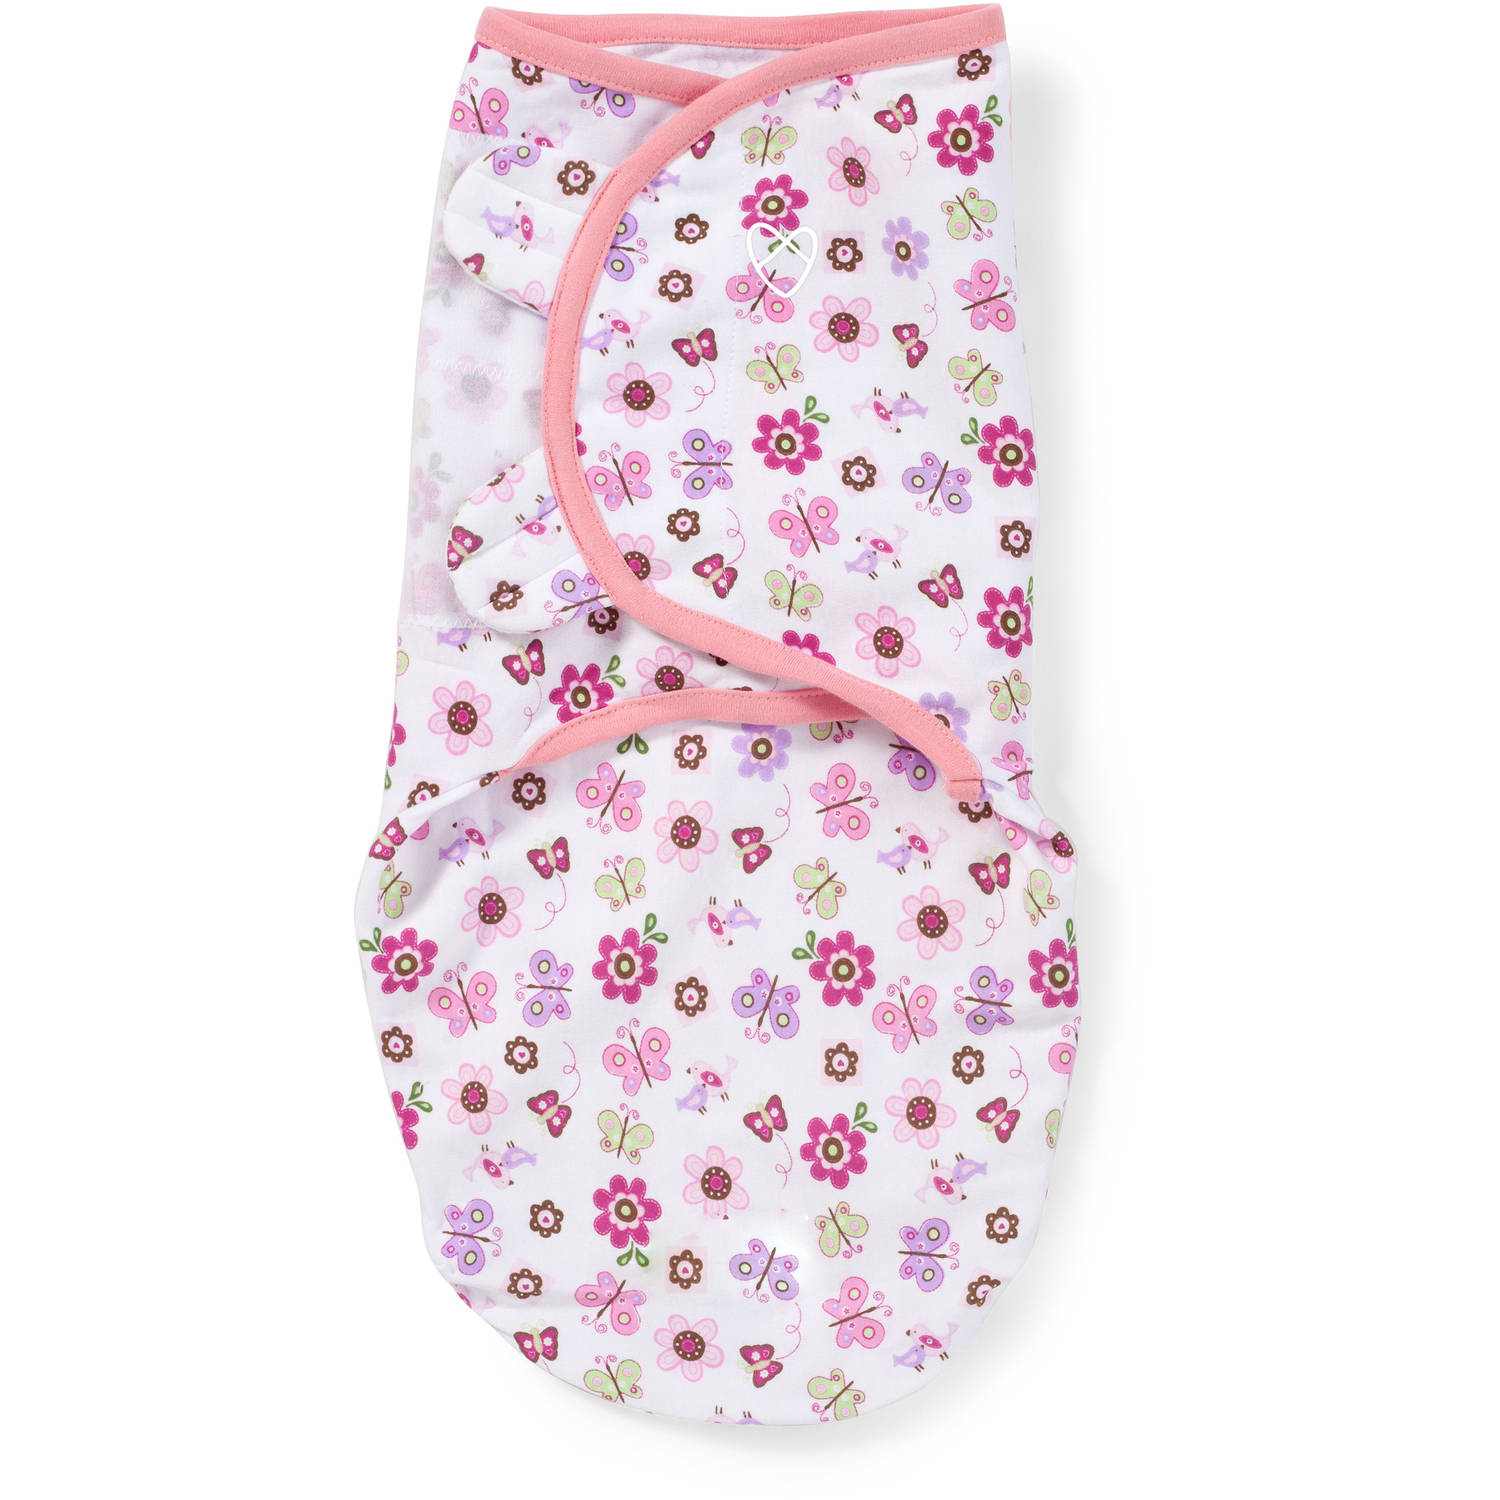 SwaddleMe Original Swaddle, 1-Pack, Flutter Flowers, Small